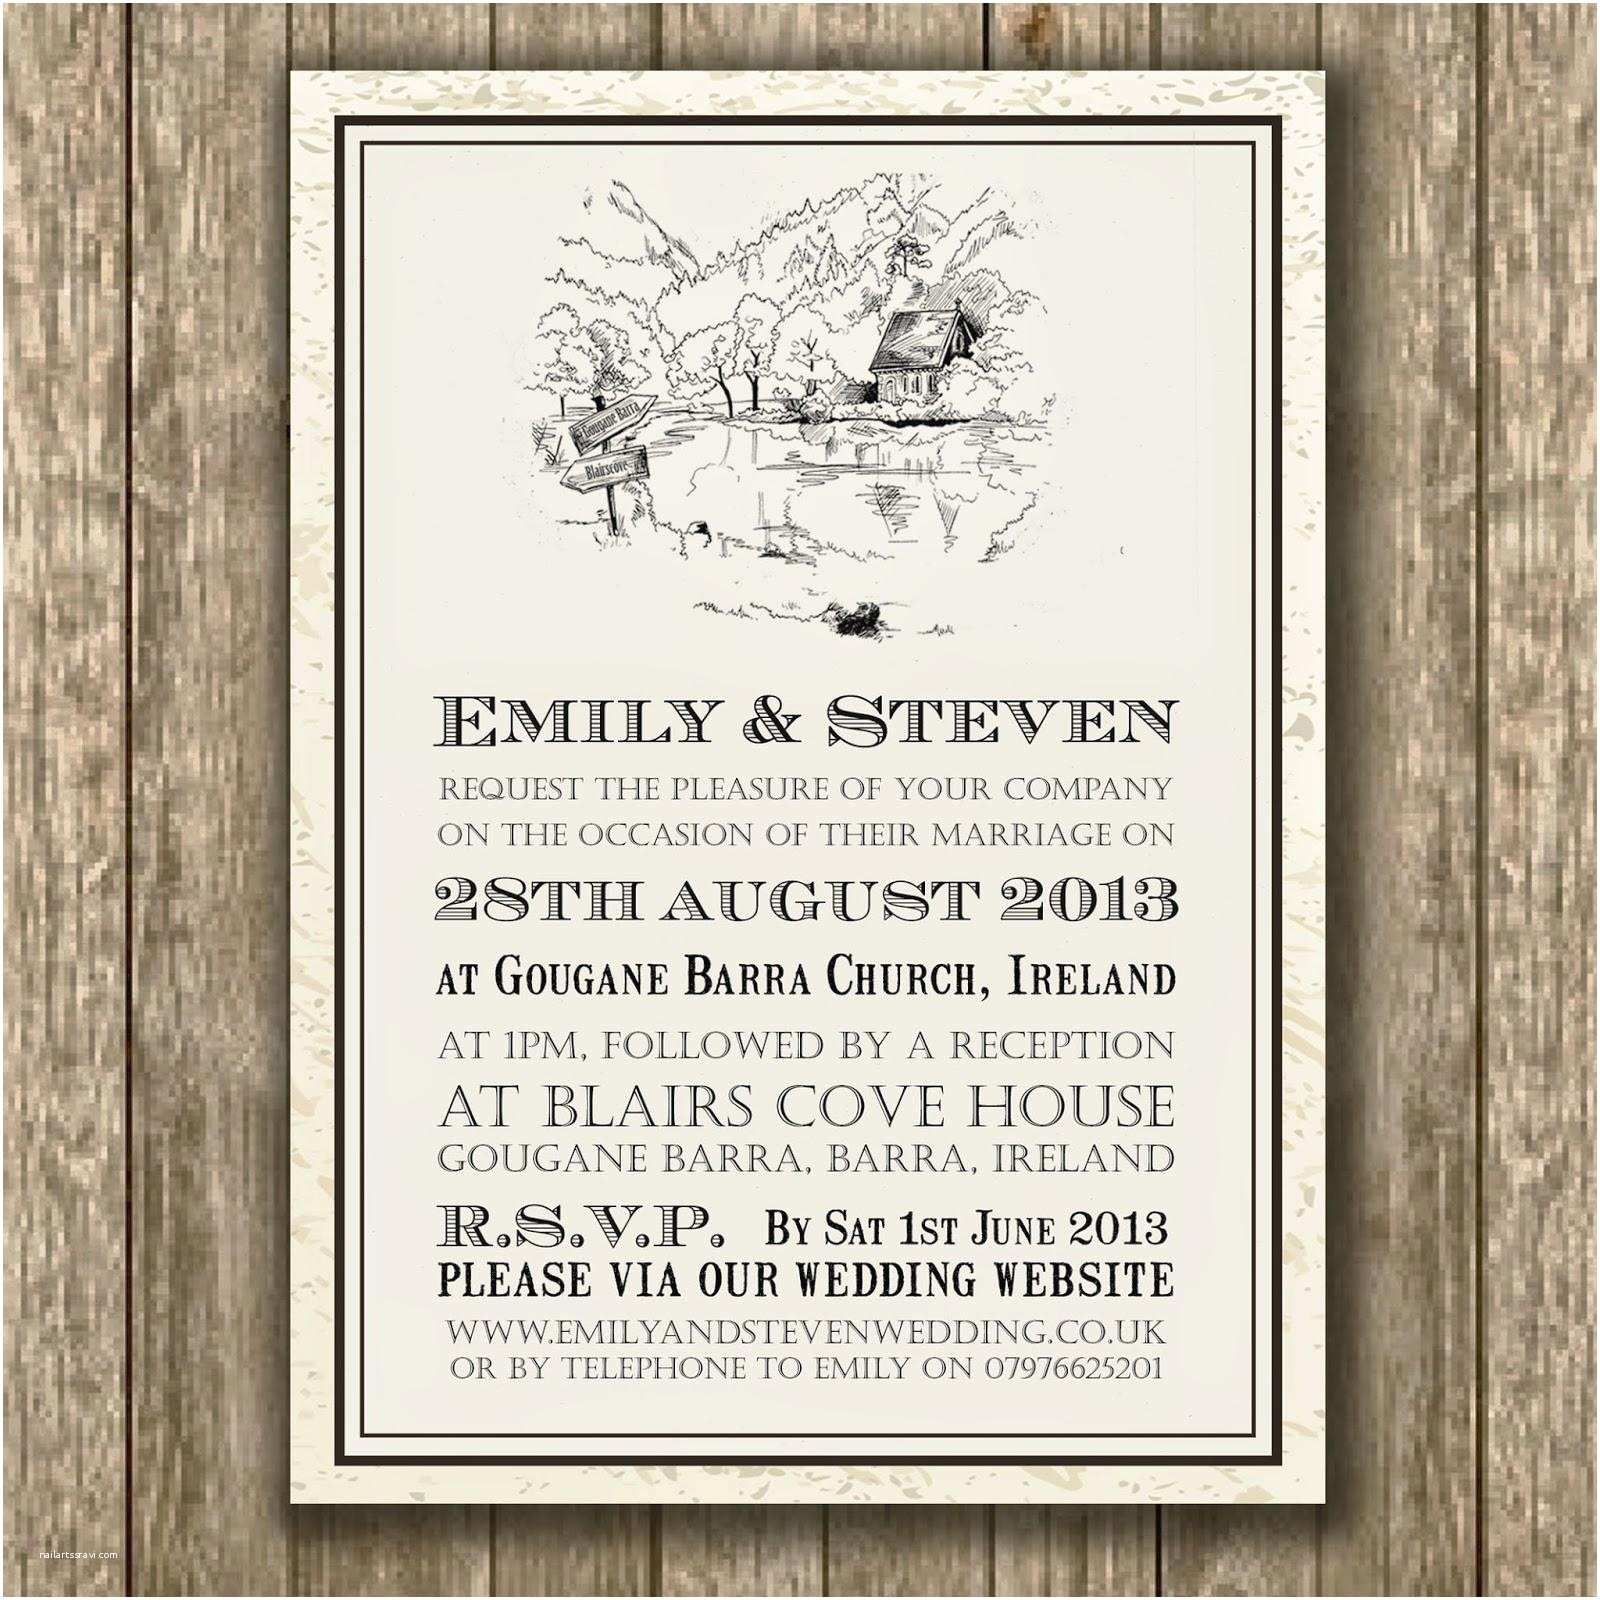 Digital Wedding Invitations Free Imposing Digital Wedding Invitations